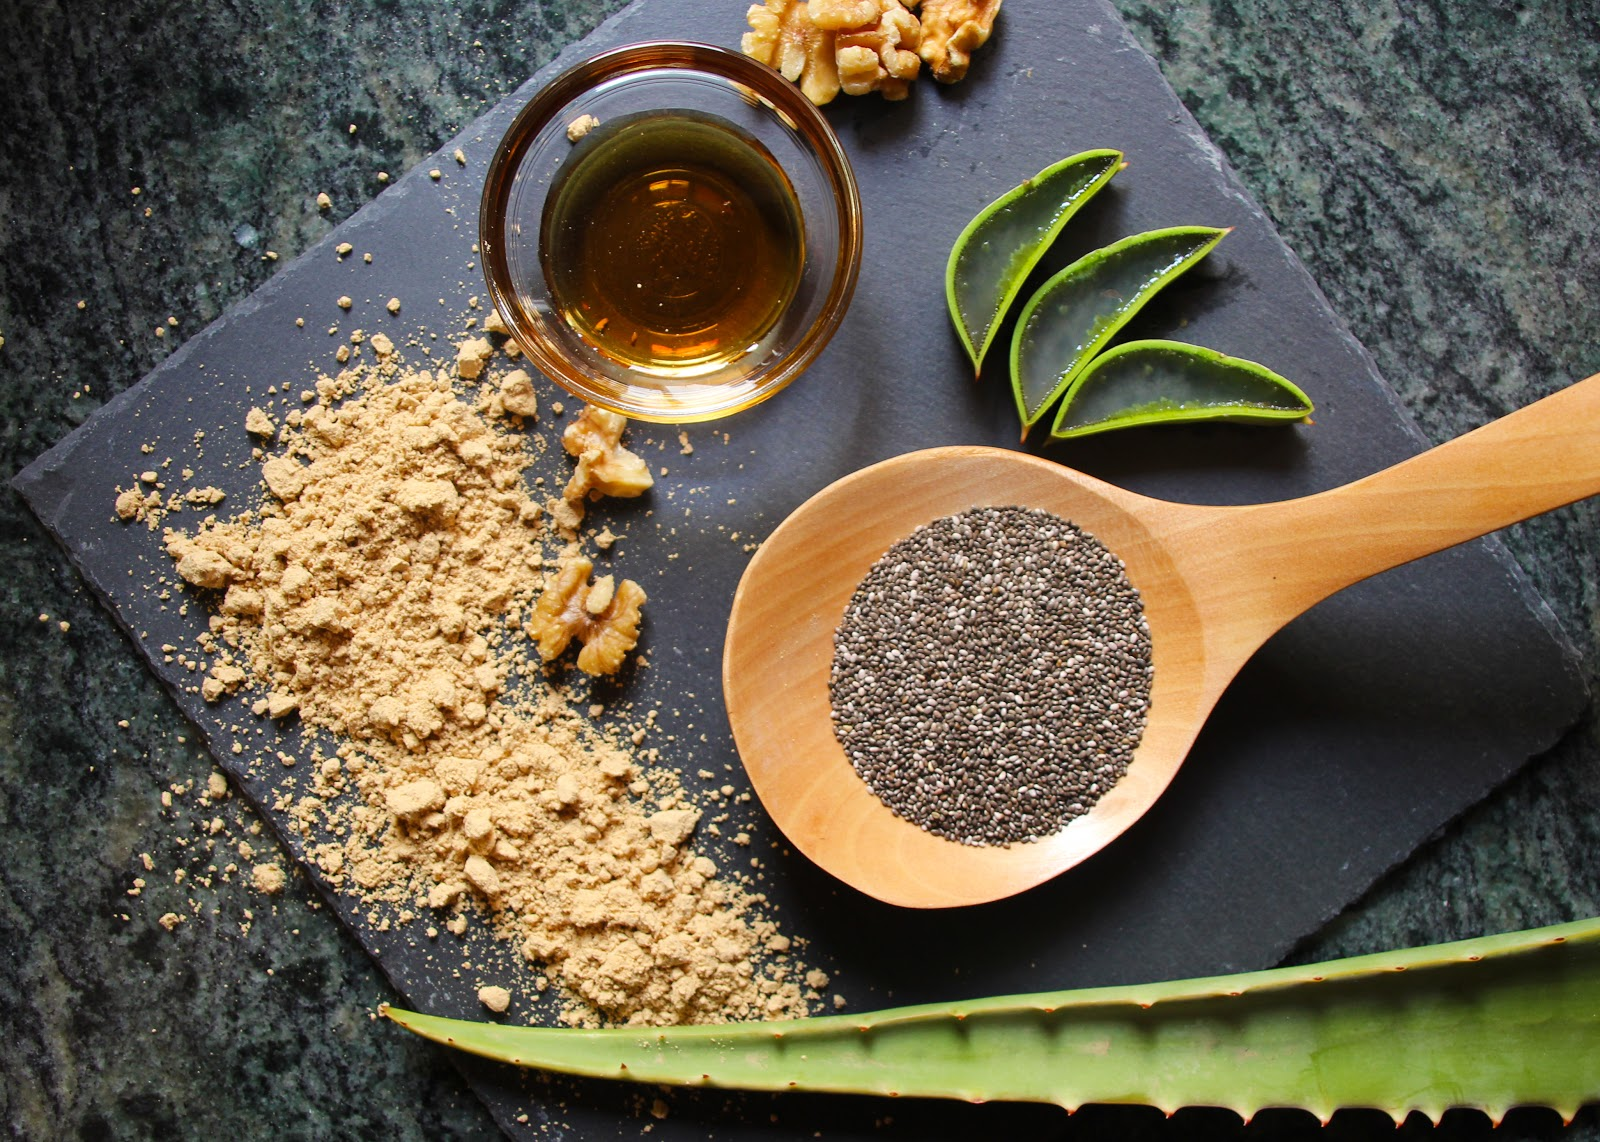 Superfoods: Moringa, Chia, Royal Jelly, Gofio and Aloe vera